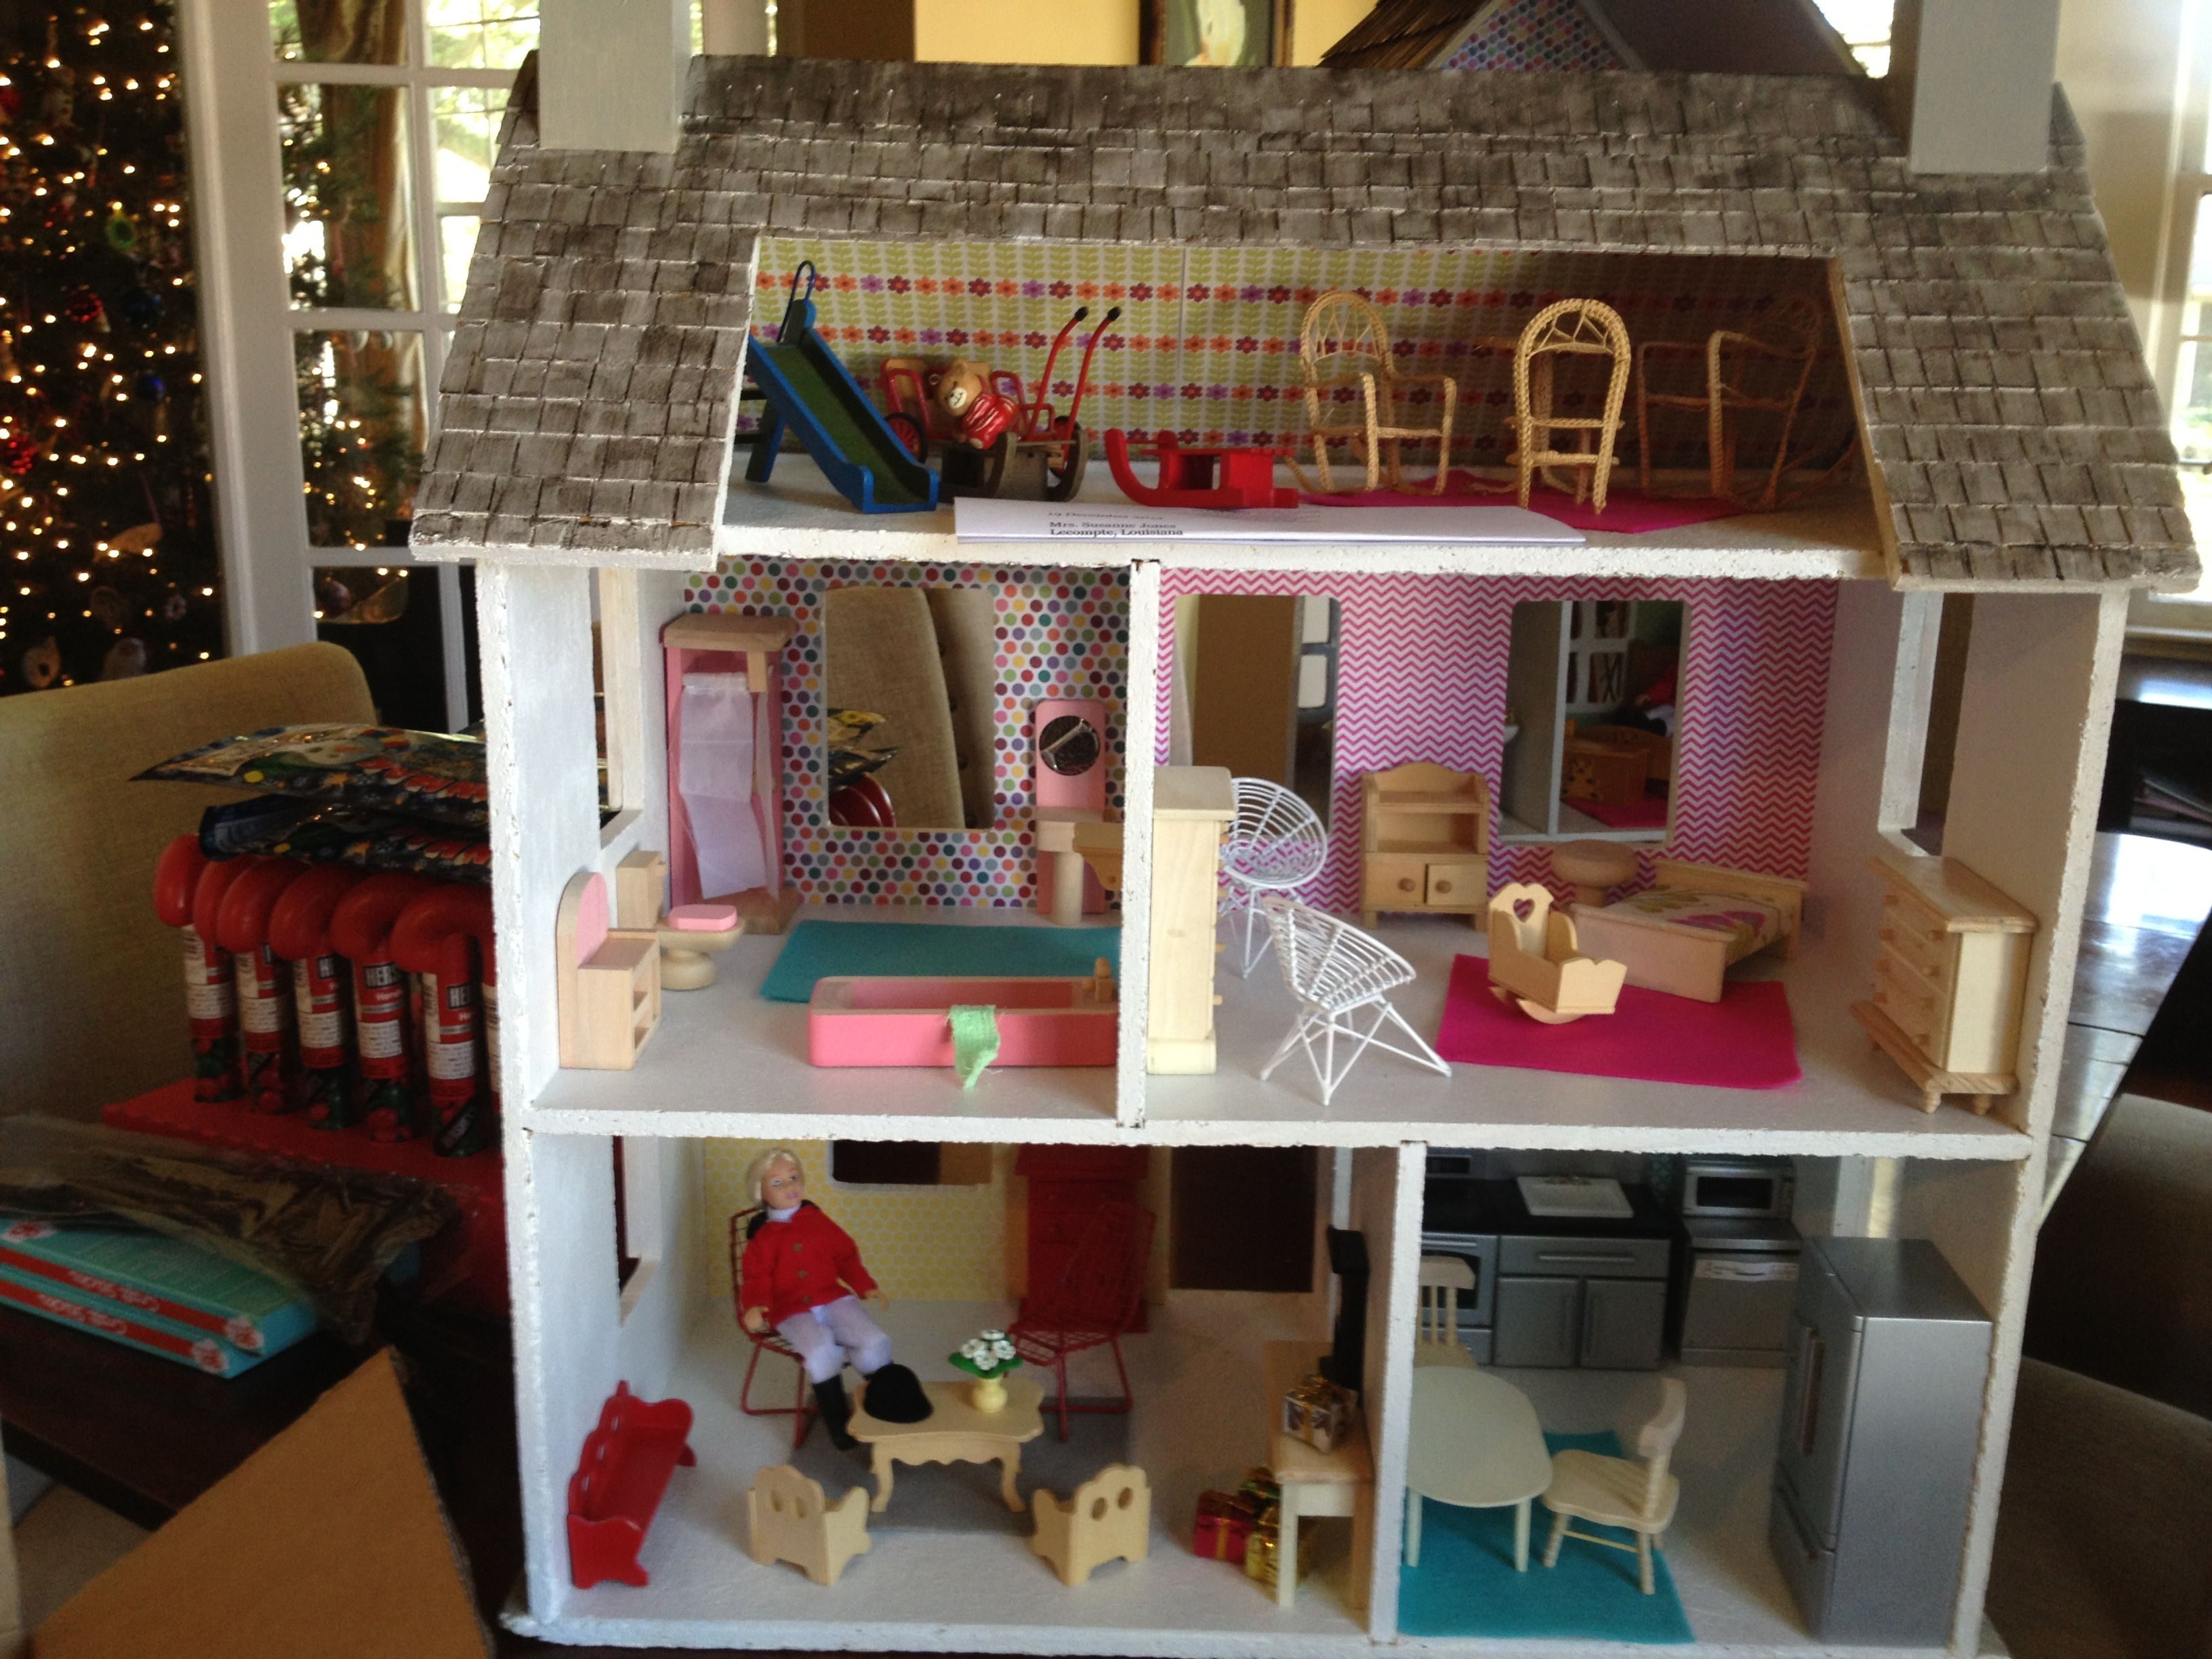 Modern Dollhouse renovation for a special christmas present